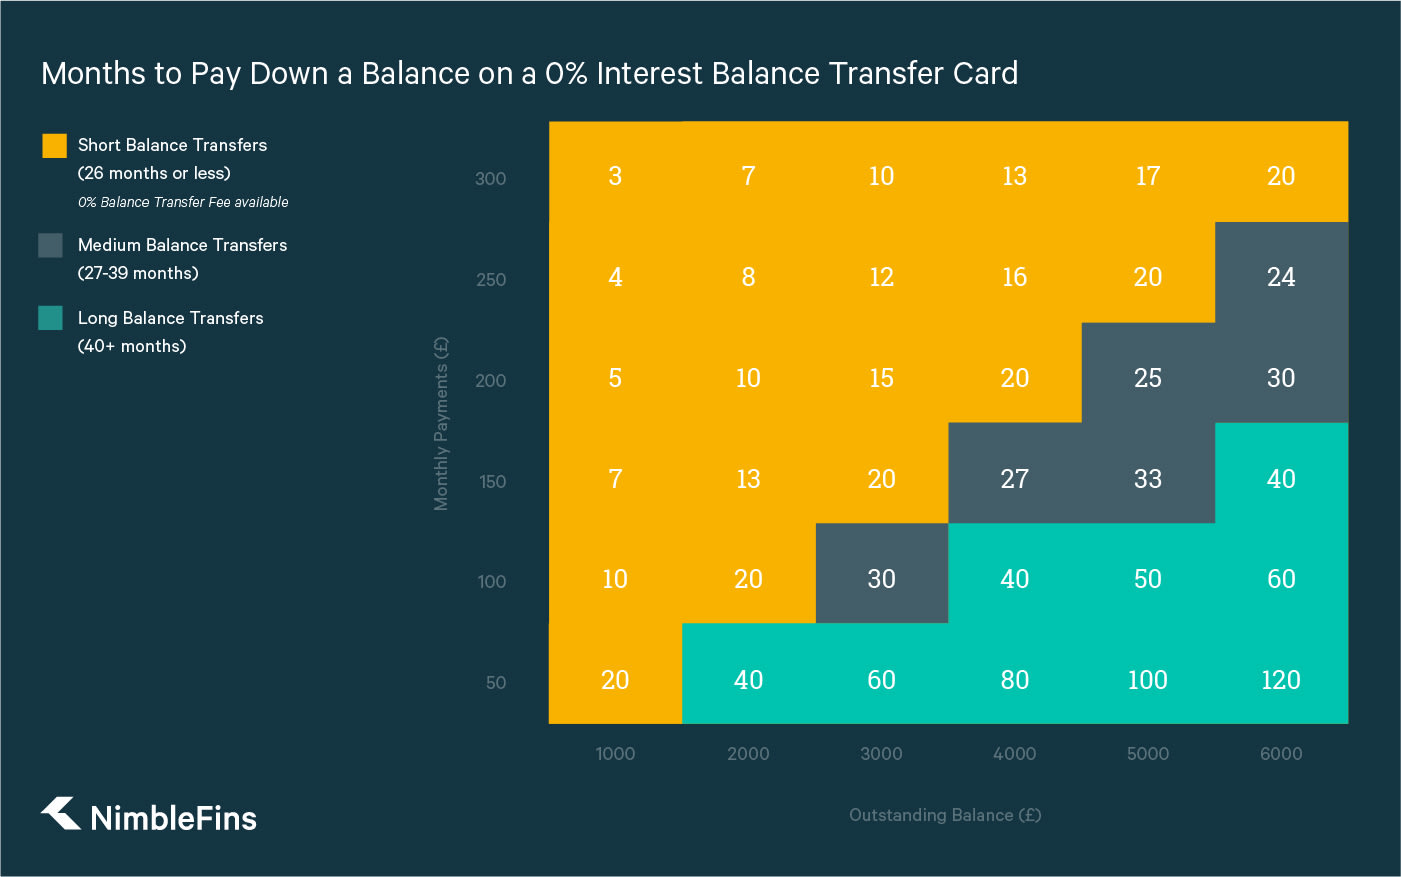 A graph showing how many months it will take to pay back a balance, given the monthly payments. This information is used to determine the duration of the best balance transfer offer for you.